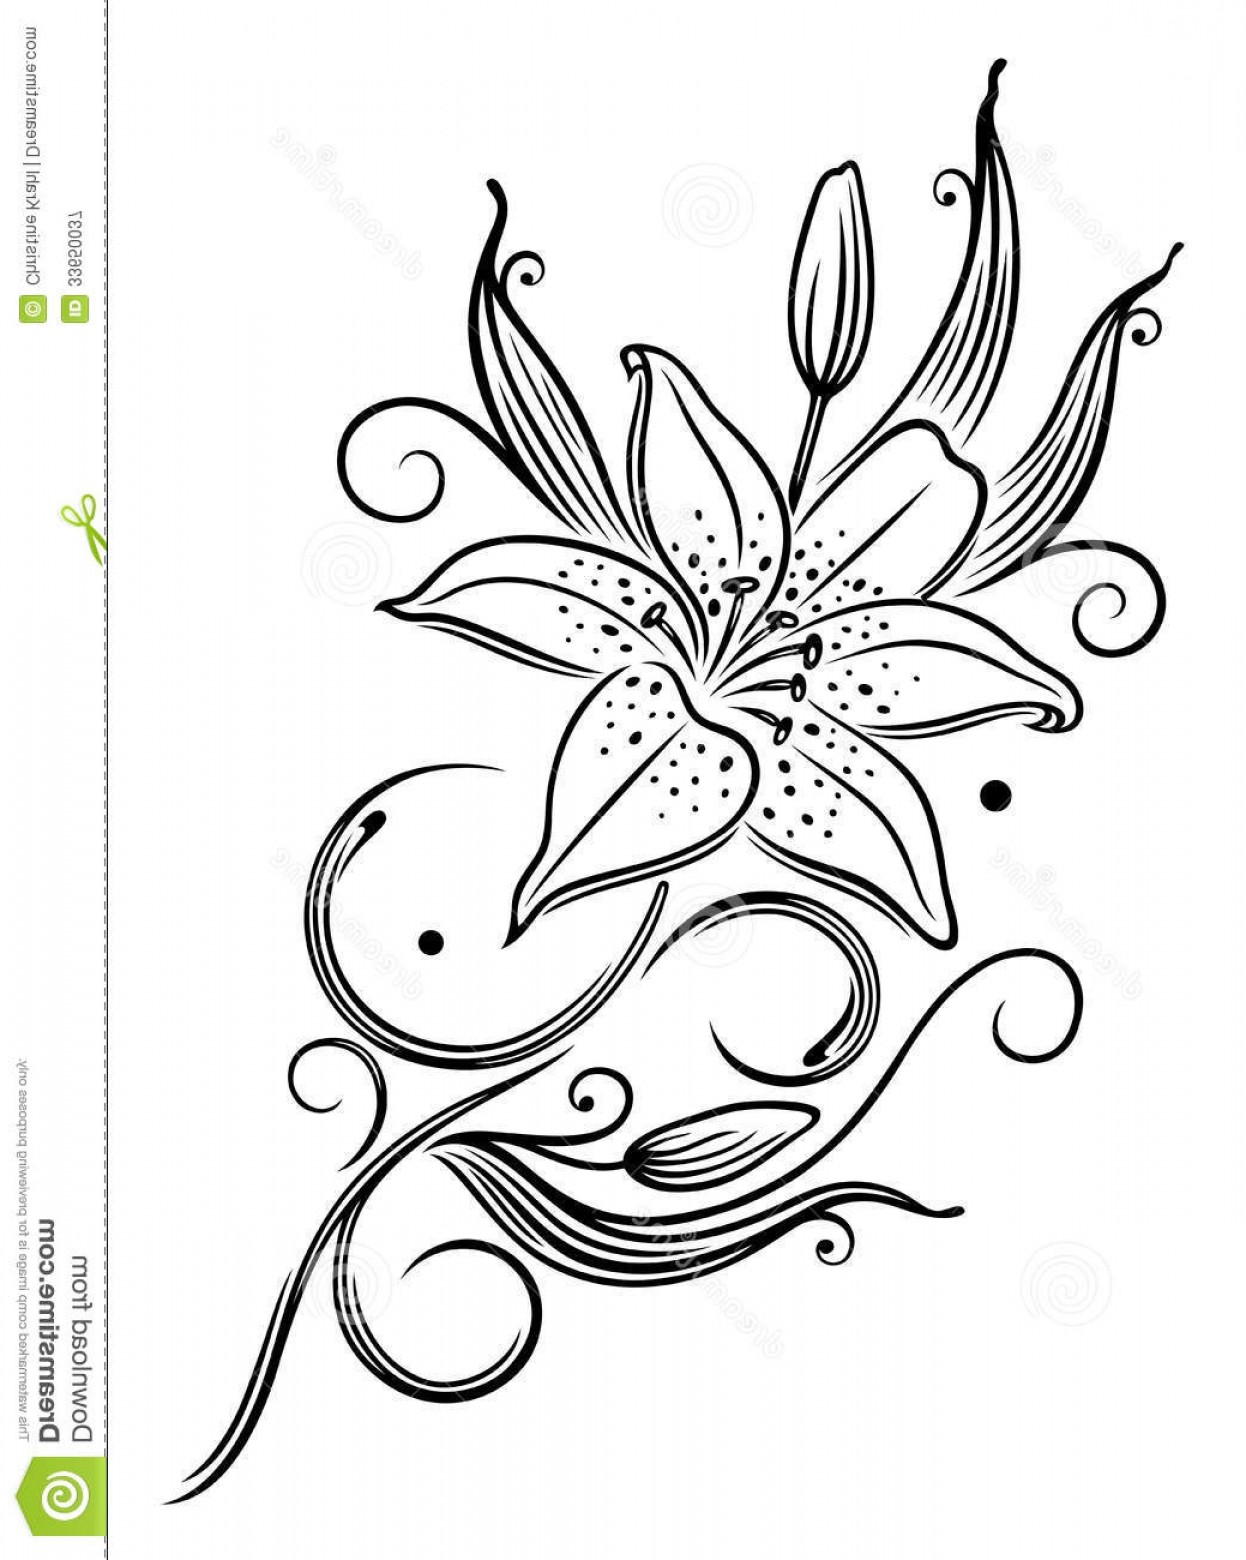 Lily Vector Art: Royalty Free Stock Photography Lily Flower Filigree Tendril Black Vector Art Image